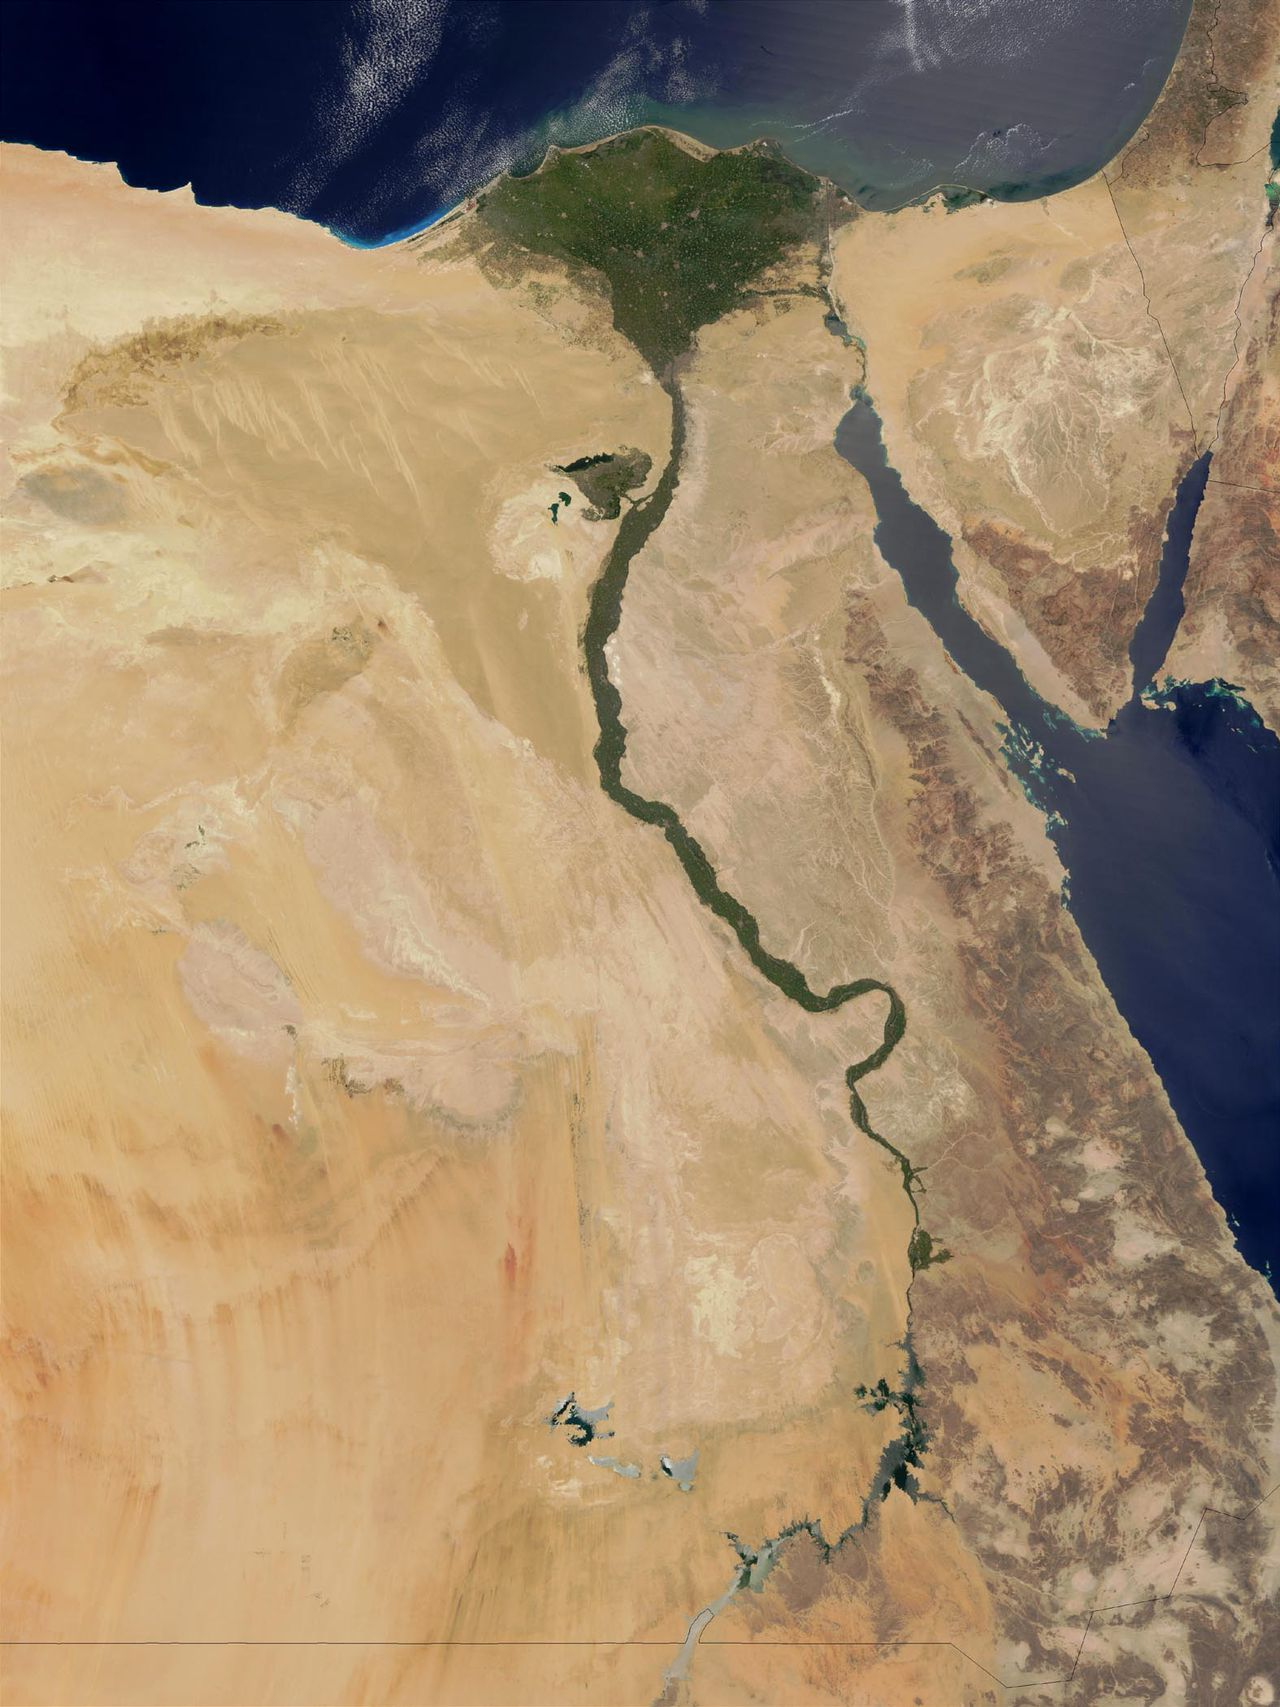 Satellietfoto van het stroomgebied van de Nijl. Landen in dit gebied maken ruzie over het Nijlwater. Foto AFP This NASA Terra satellite image released 28 August, 2003 shows the lower Nile River valley. For thousands of years, the lower Nile valley (northern end) has been a cradle of civilization. Surrounded by deserts, the Nile river brings much-needed water to the land and people, making the valley into an oasis of agriculture and life. In this true-color image captured 23 August the valley snakes in a green line from Lake Nasser in southern Egypt (Bottom) to the edge of the Mediterranean Sea (Top), where it widens out into a vast delta. AFP PHOTO/NASA